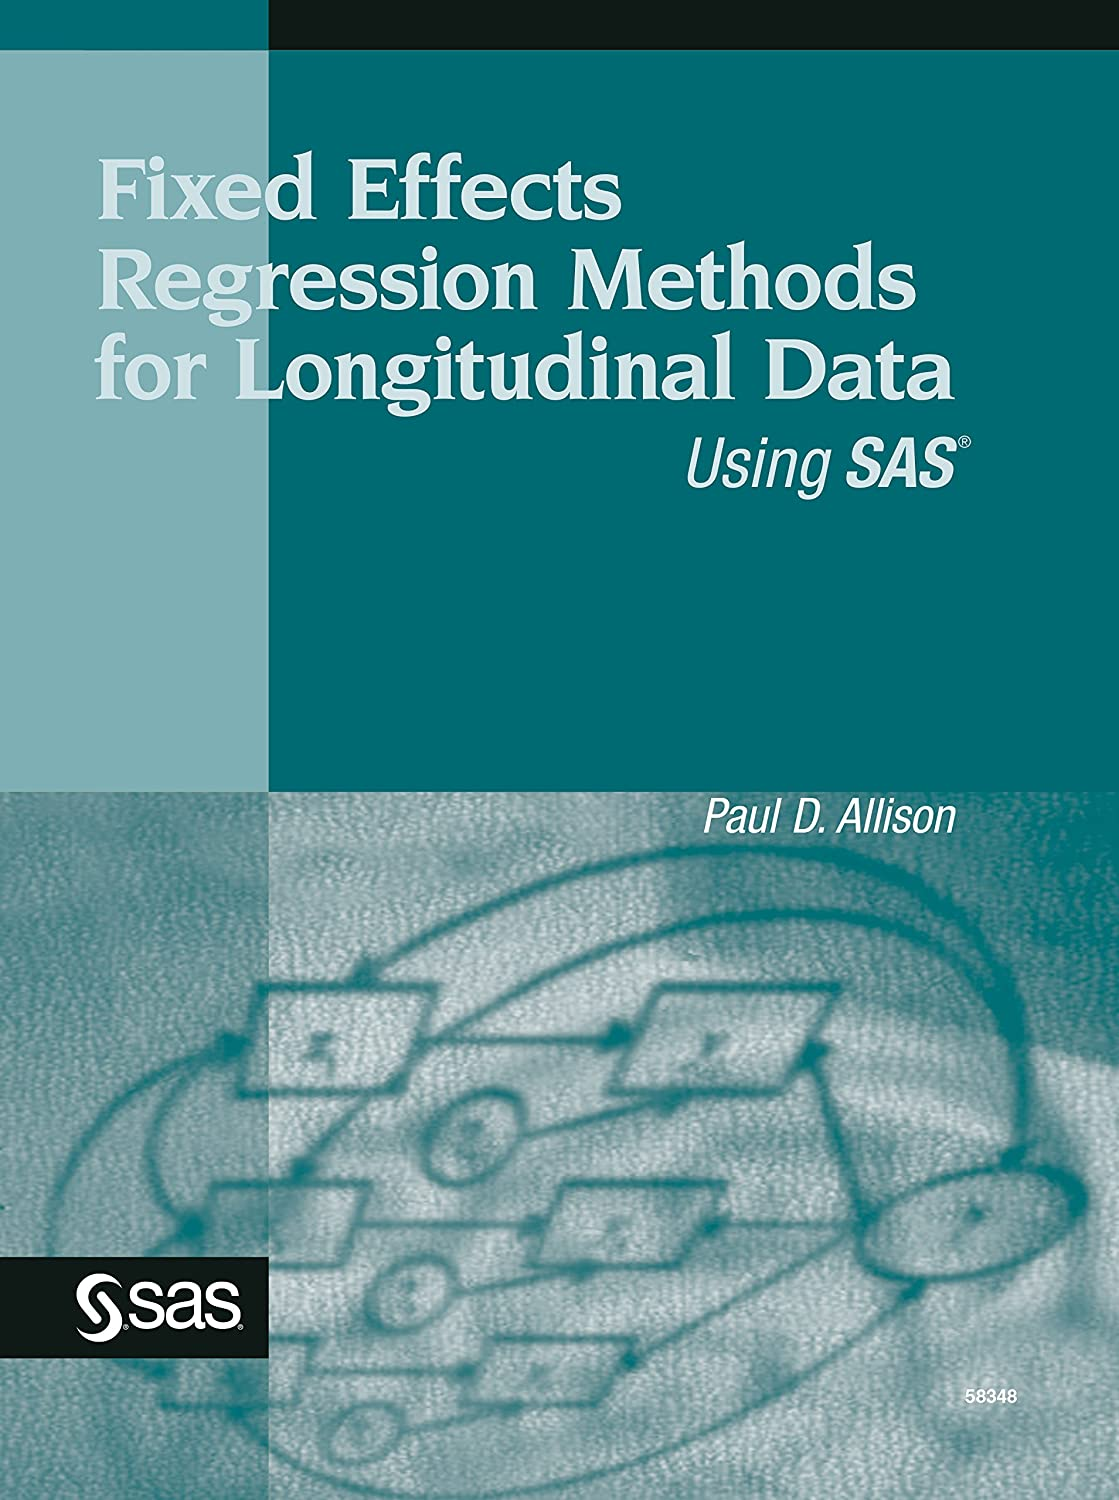 Fixed Effects Regression Methods for Longitudinal Data Using